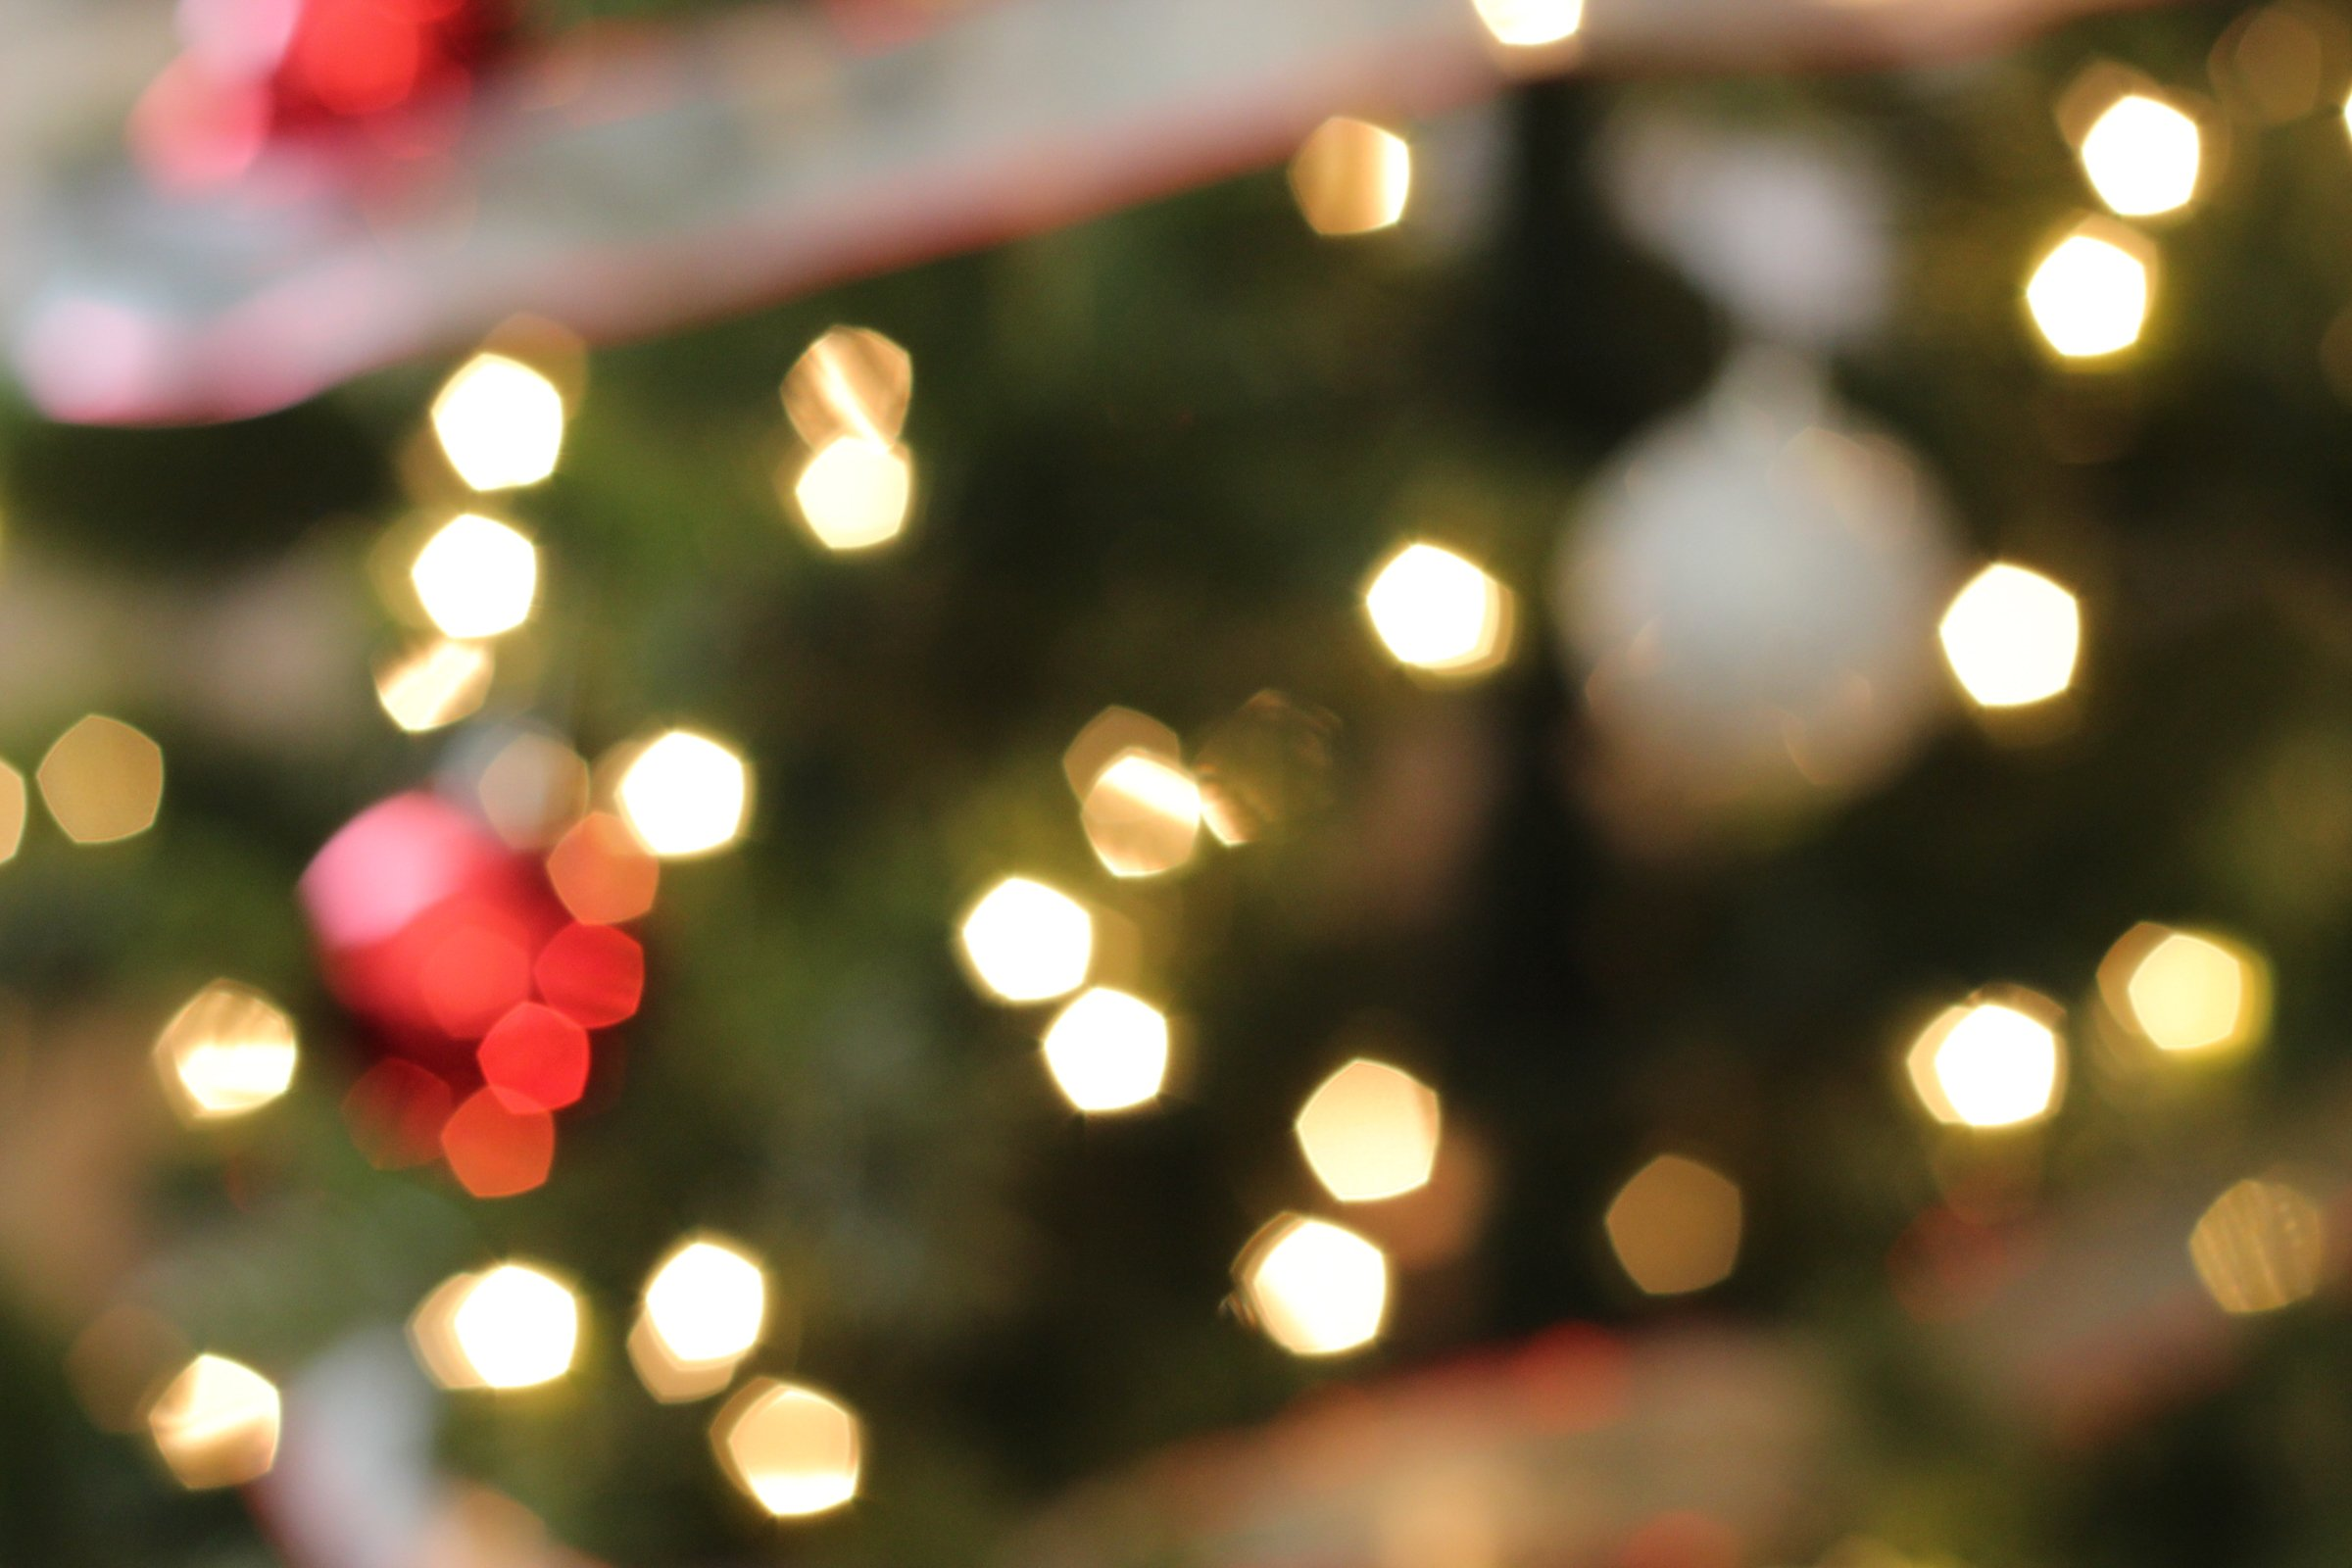 Free stock photo of bokeh of christmas tree lights amp ornaments